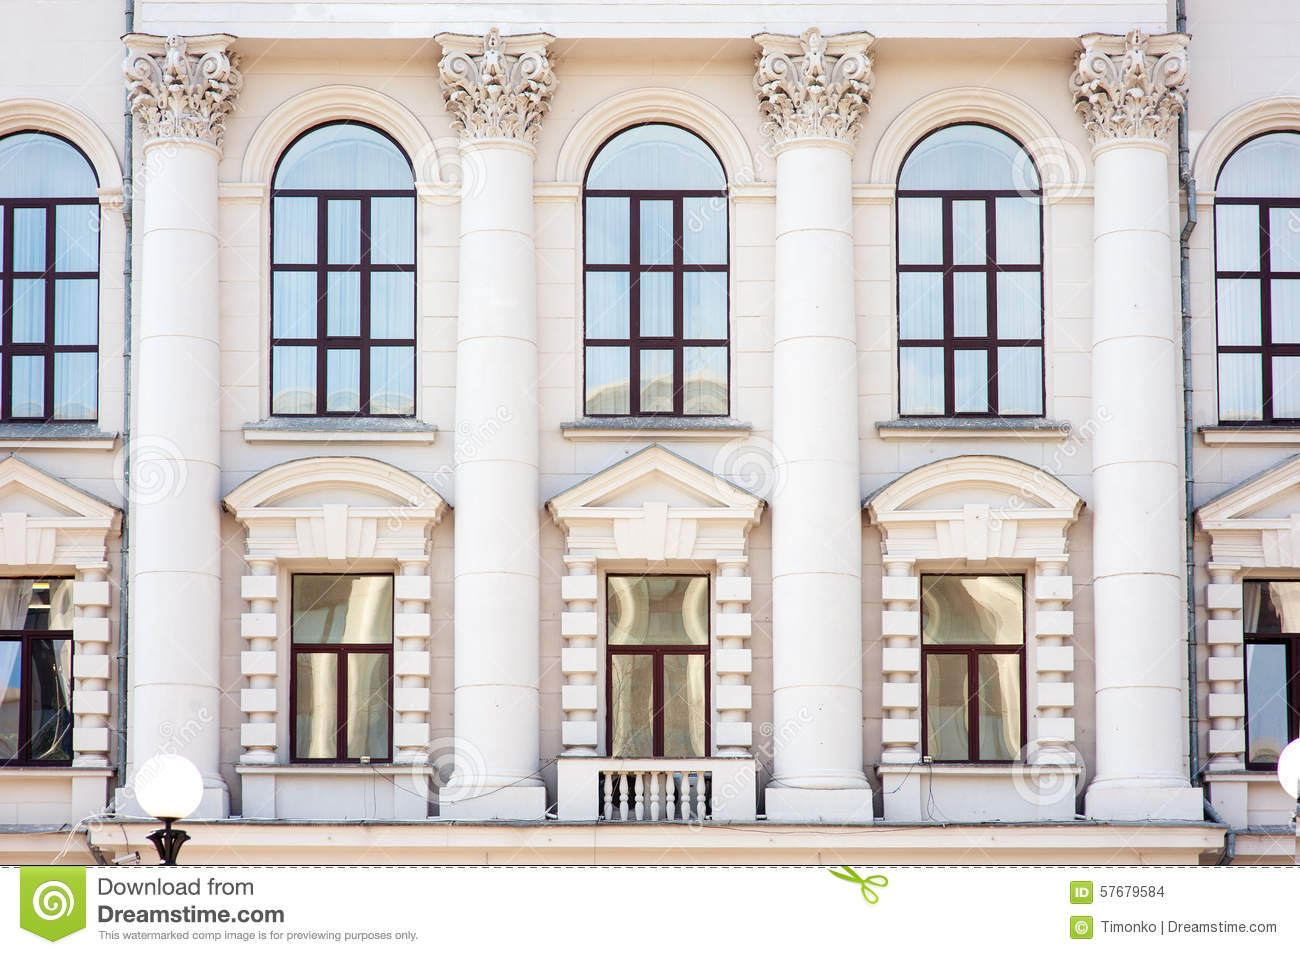 Architecture and windows of ancient renaissance style for Architecture windows